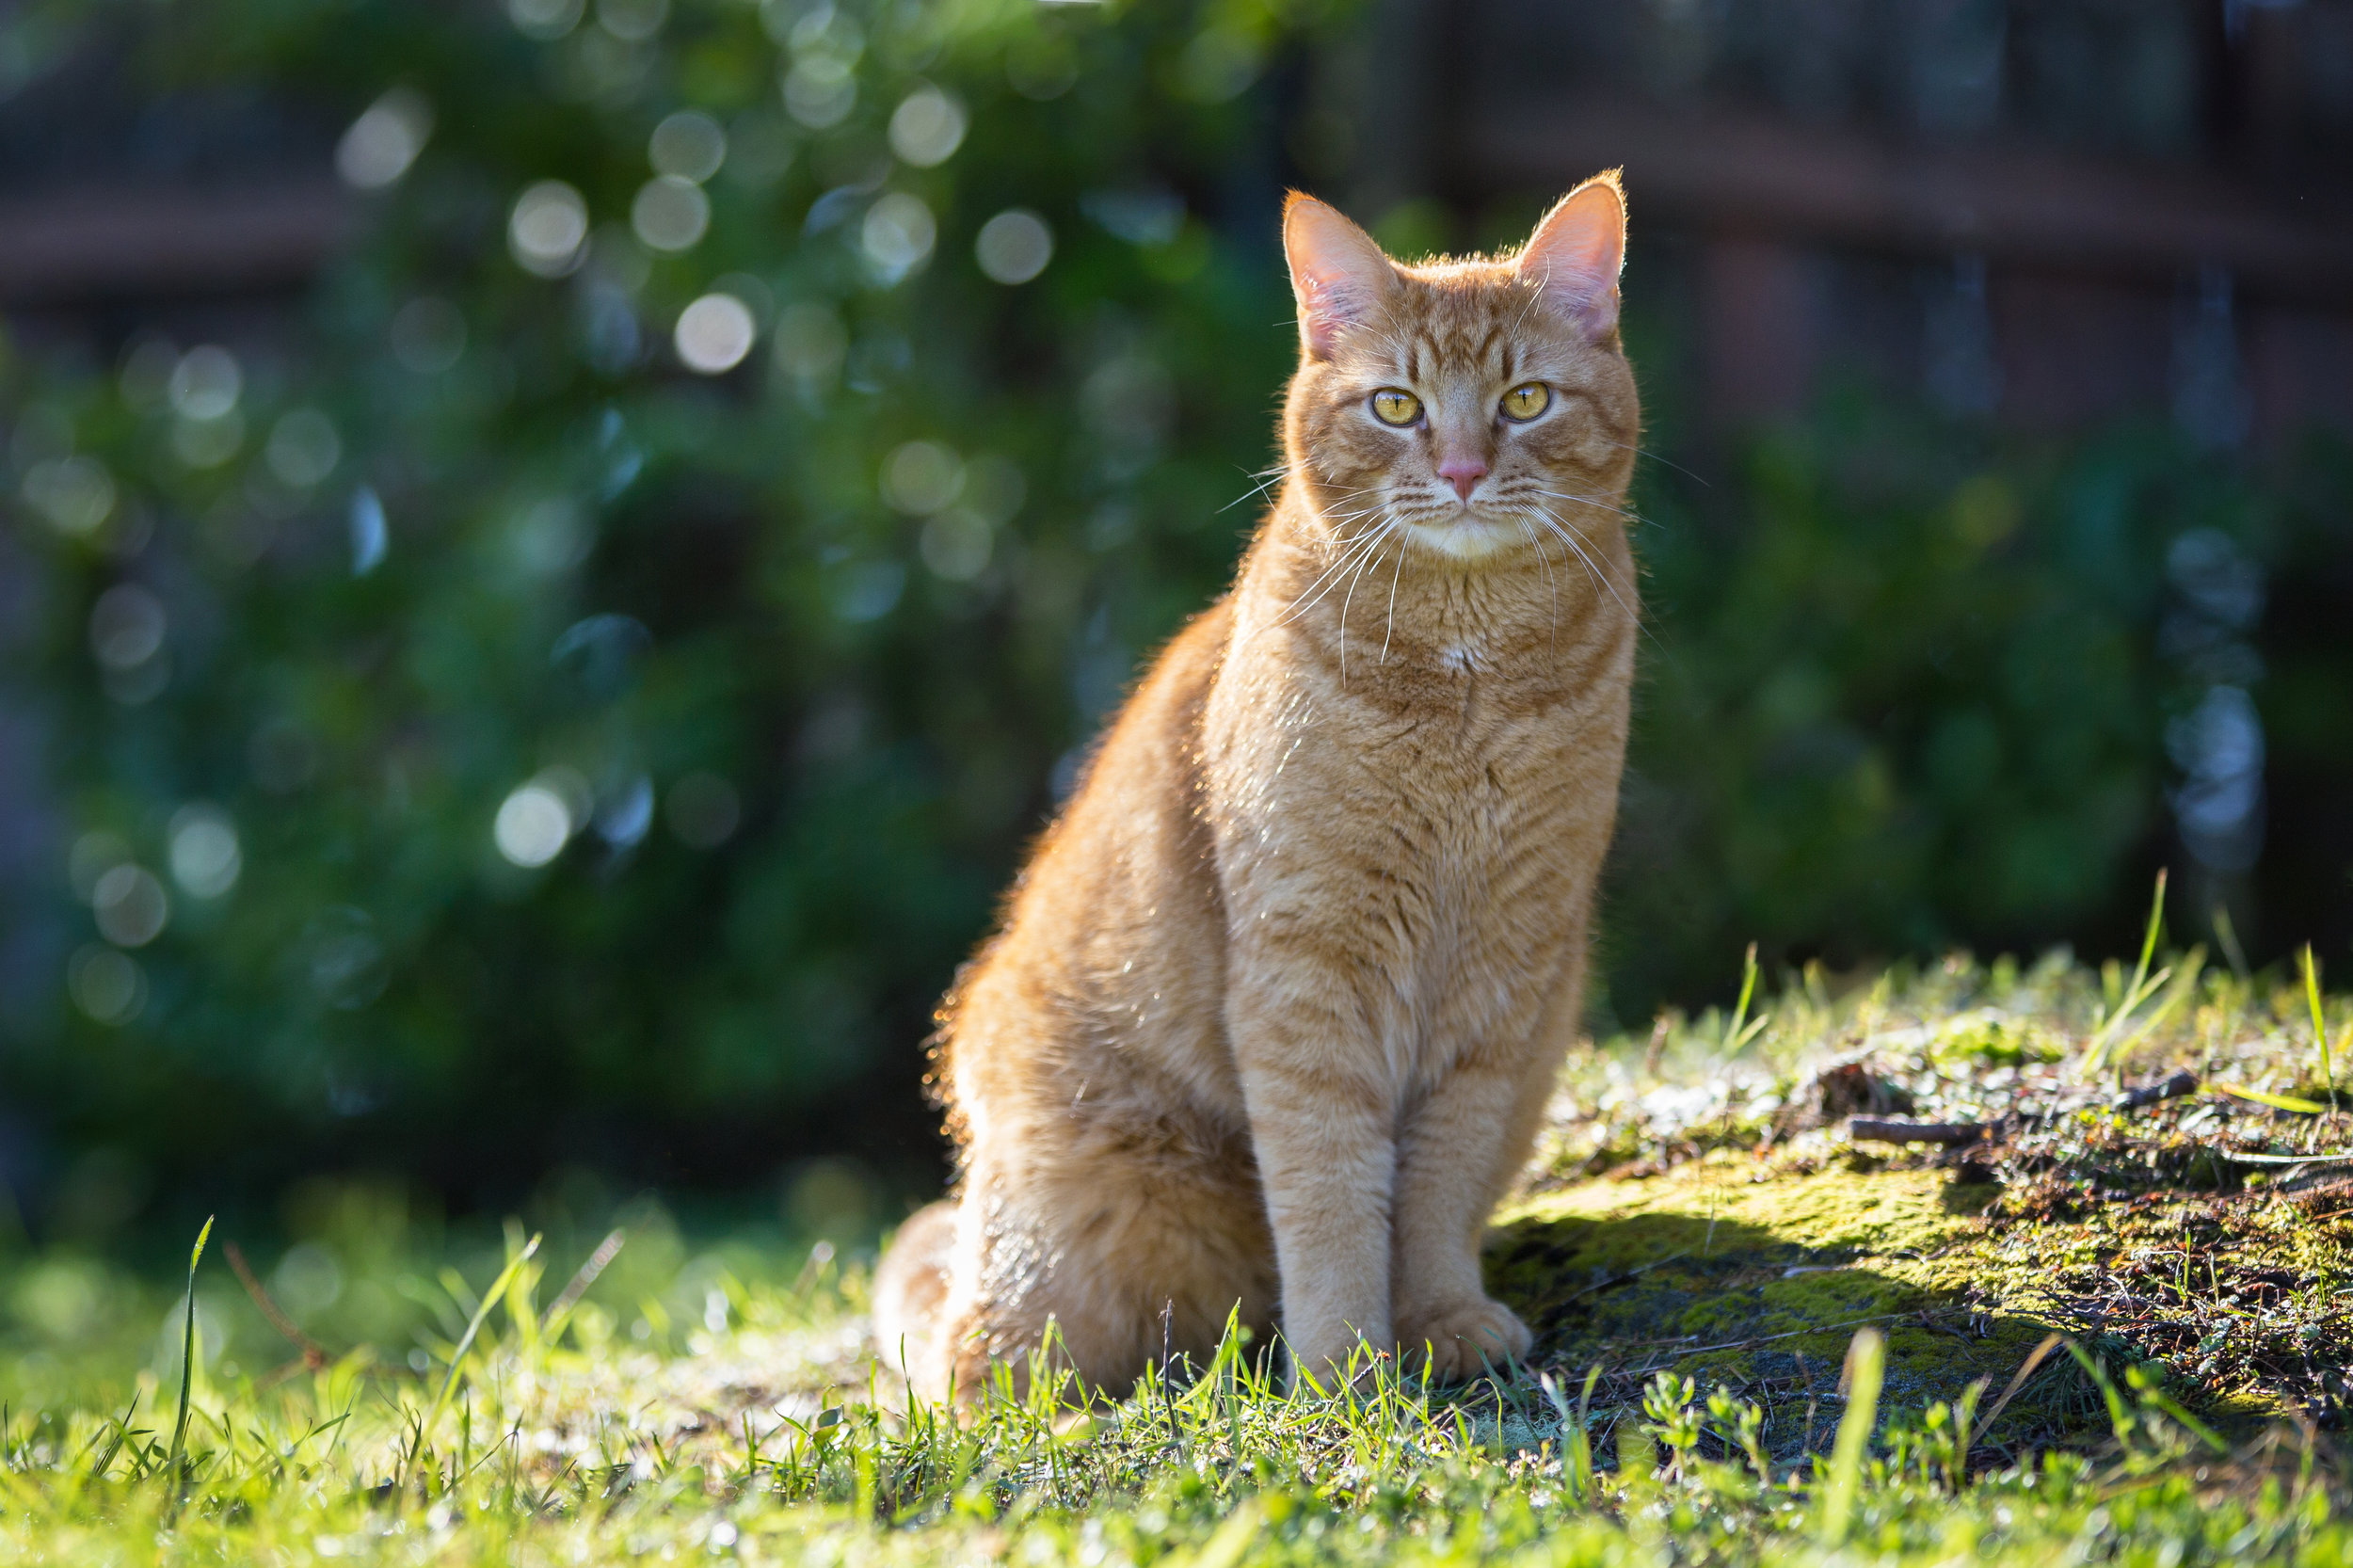 - Got an outside Kitty? I've got a long lens.Kitty won't even know what hit him!